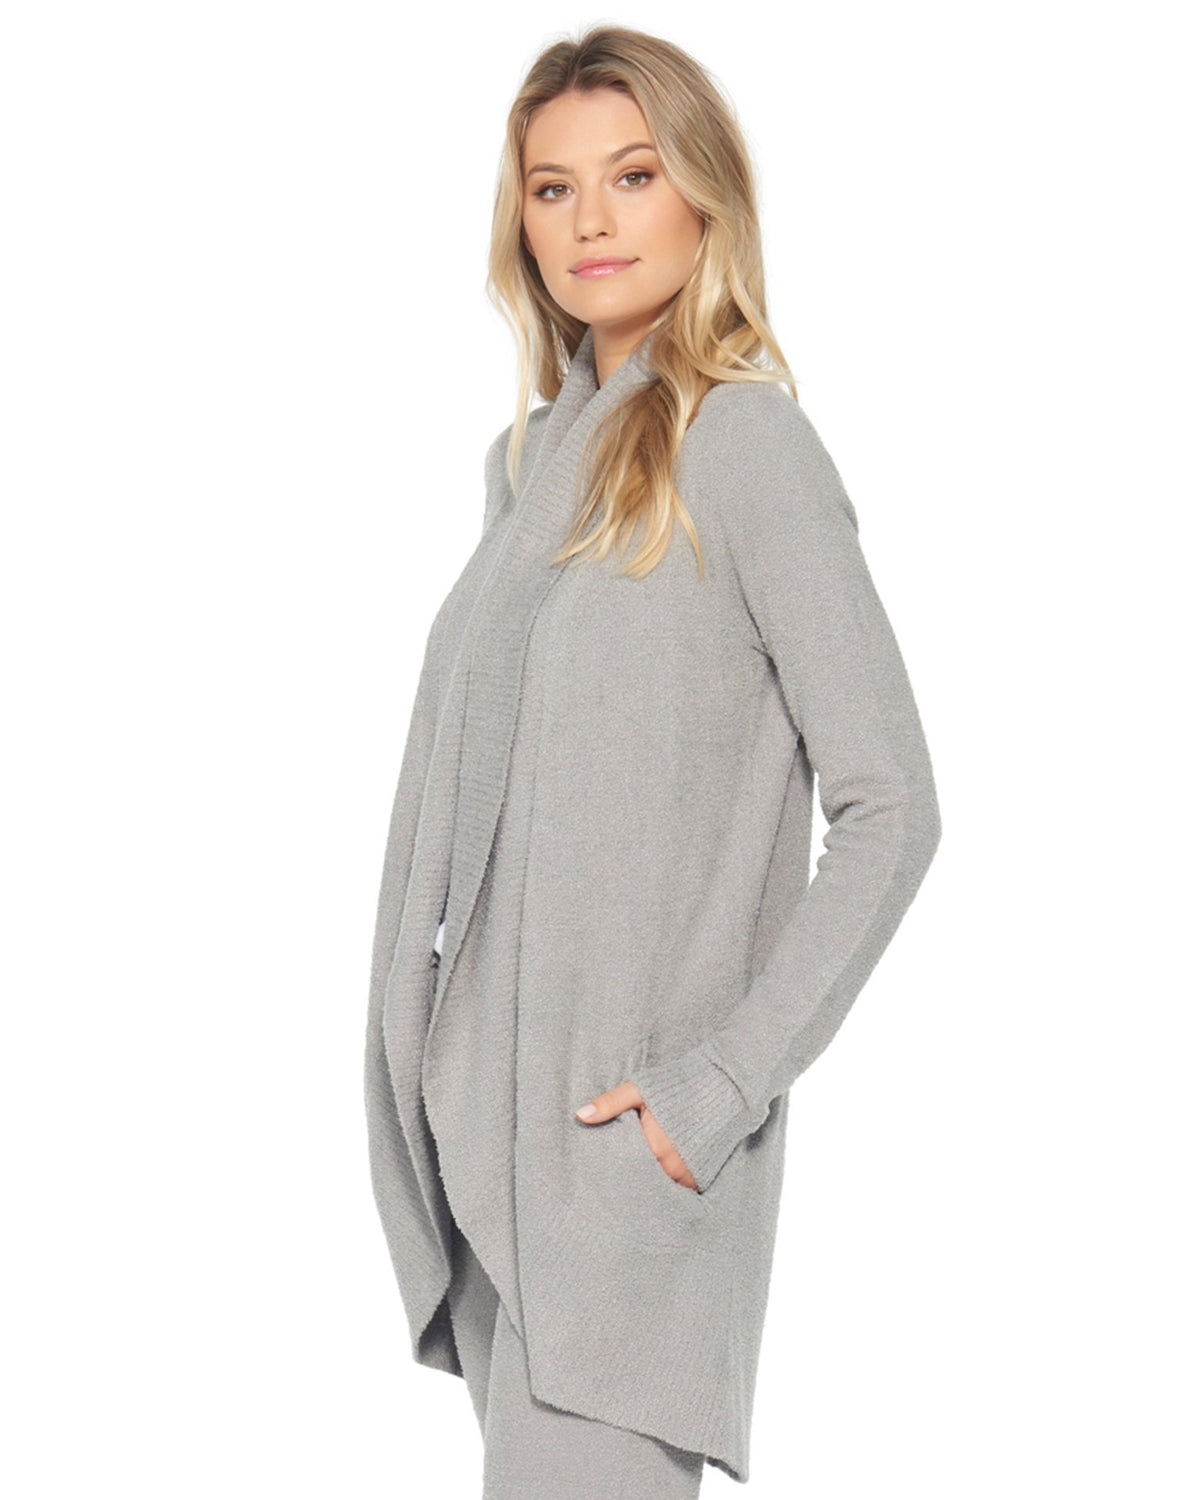 Barefoot Dreams Clothing Cozychic Lite Circle Cardi